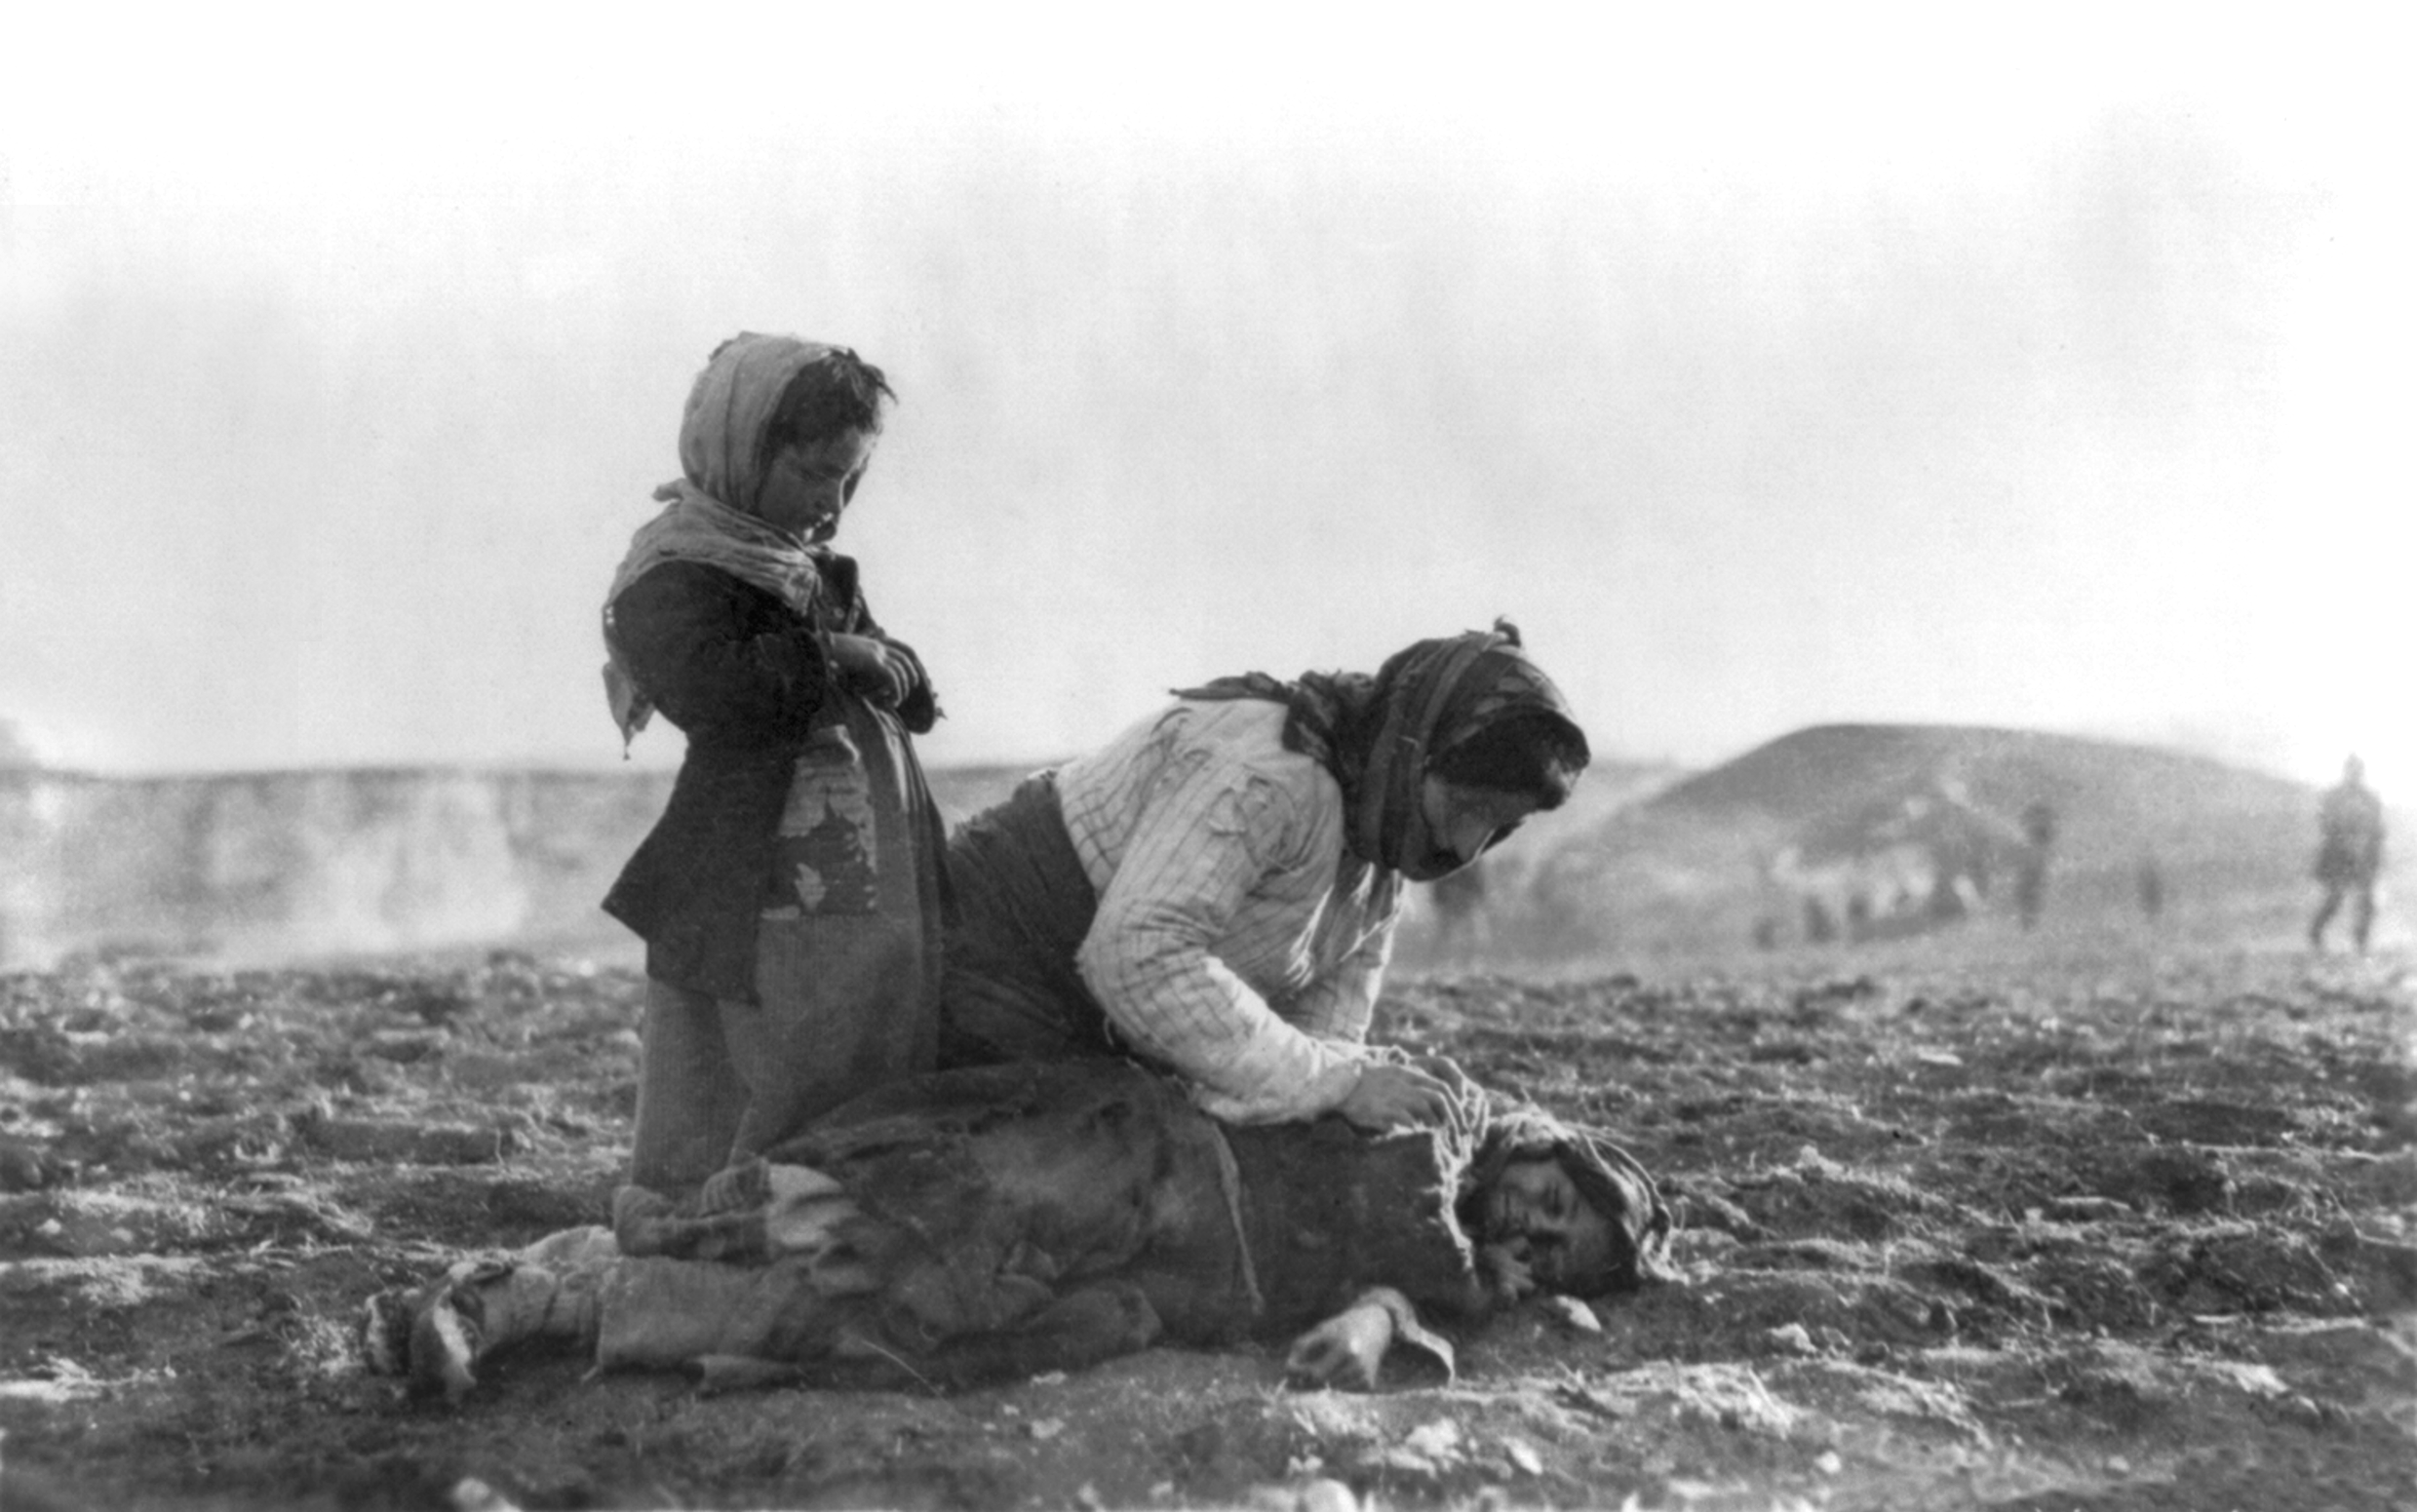 "An Armenian woman kneeling beside a dead child in field ""within sight of help and safety at Aleppo"" (Credit: Wikicommons)"